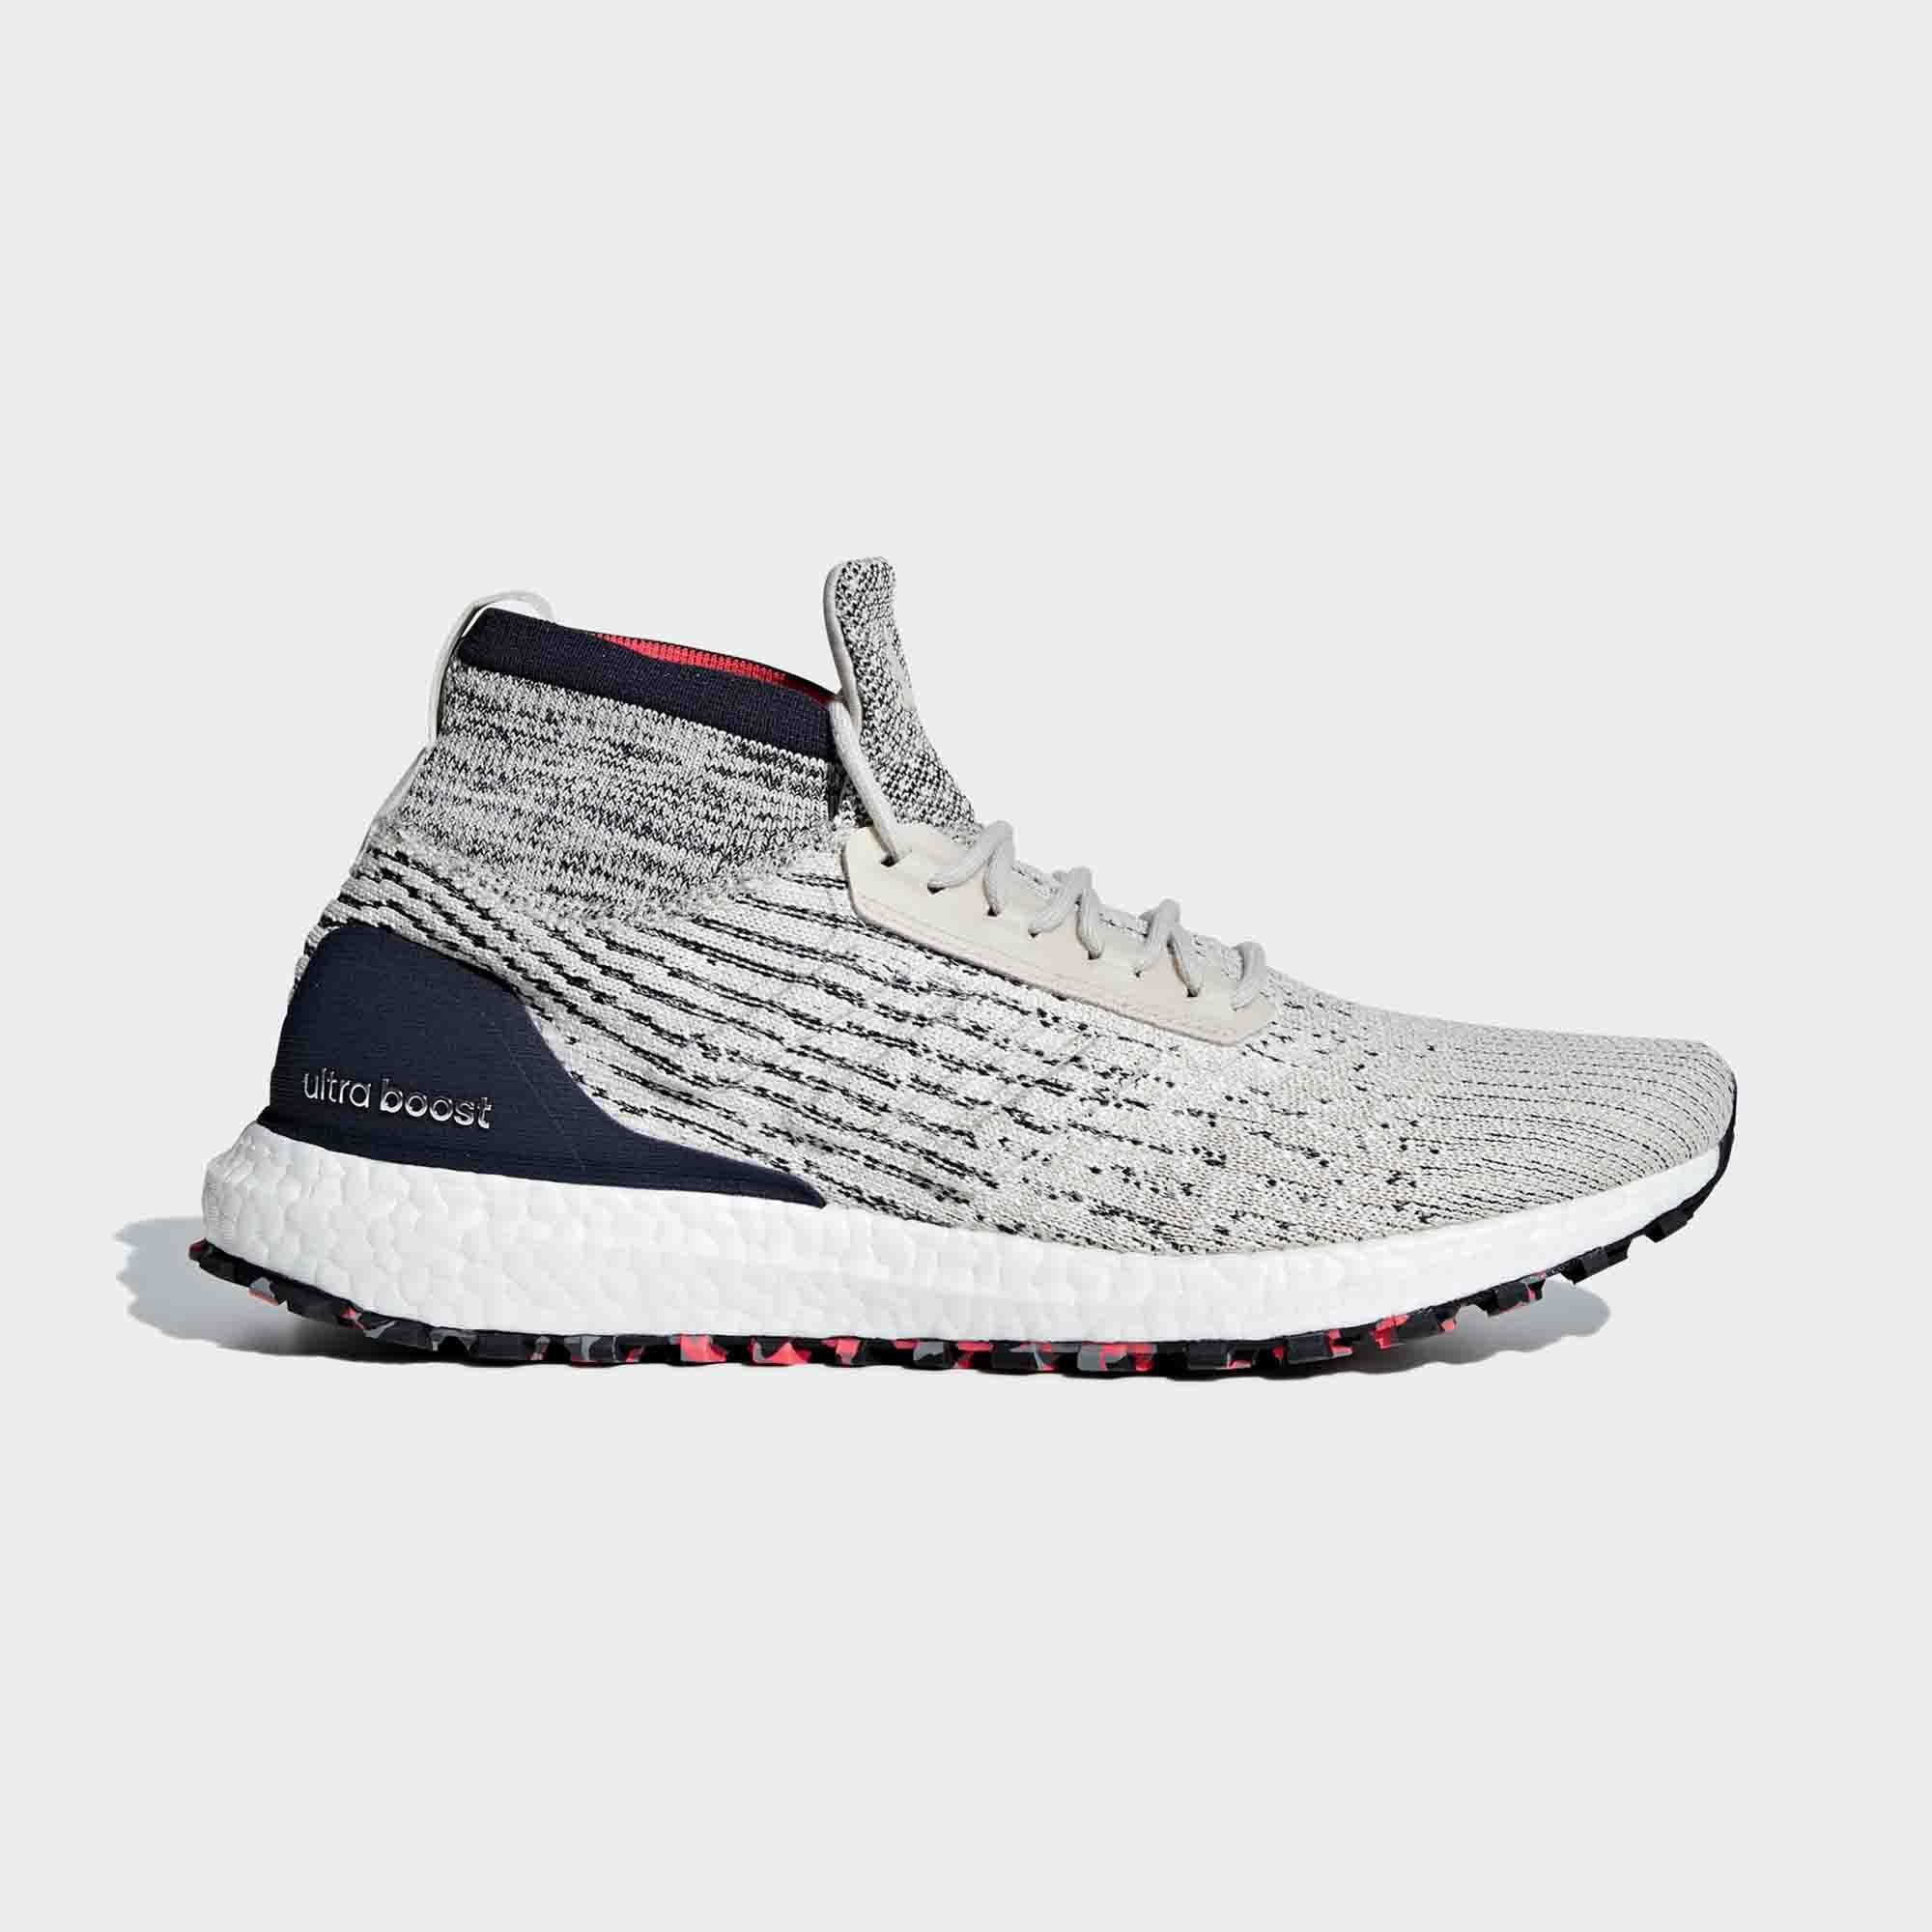 timeless design c4657 dda8e Buy adidas Men Ultraboost All Terrain Running Shoes Online in Singapore |  Royal Sporting House